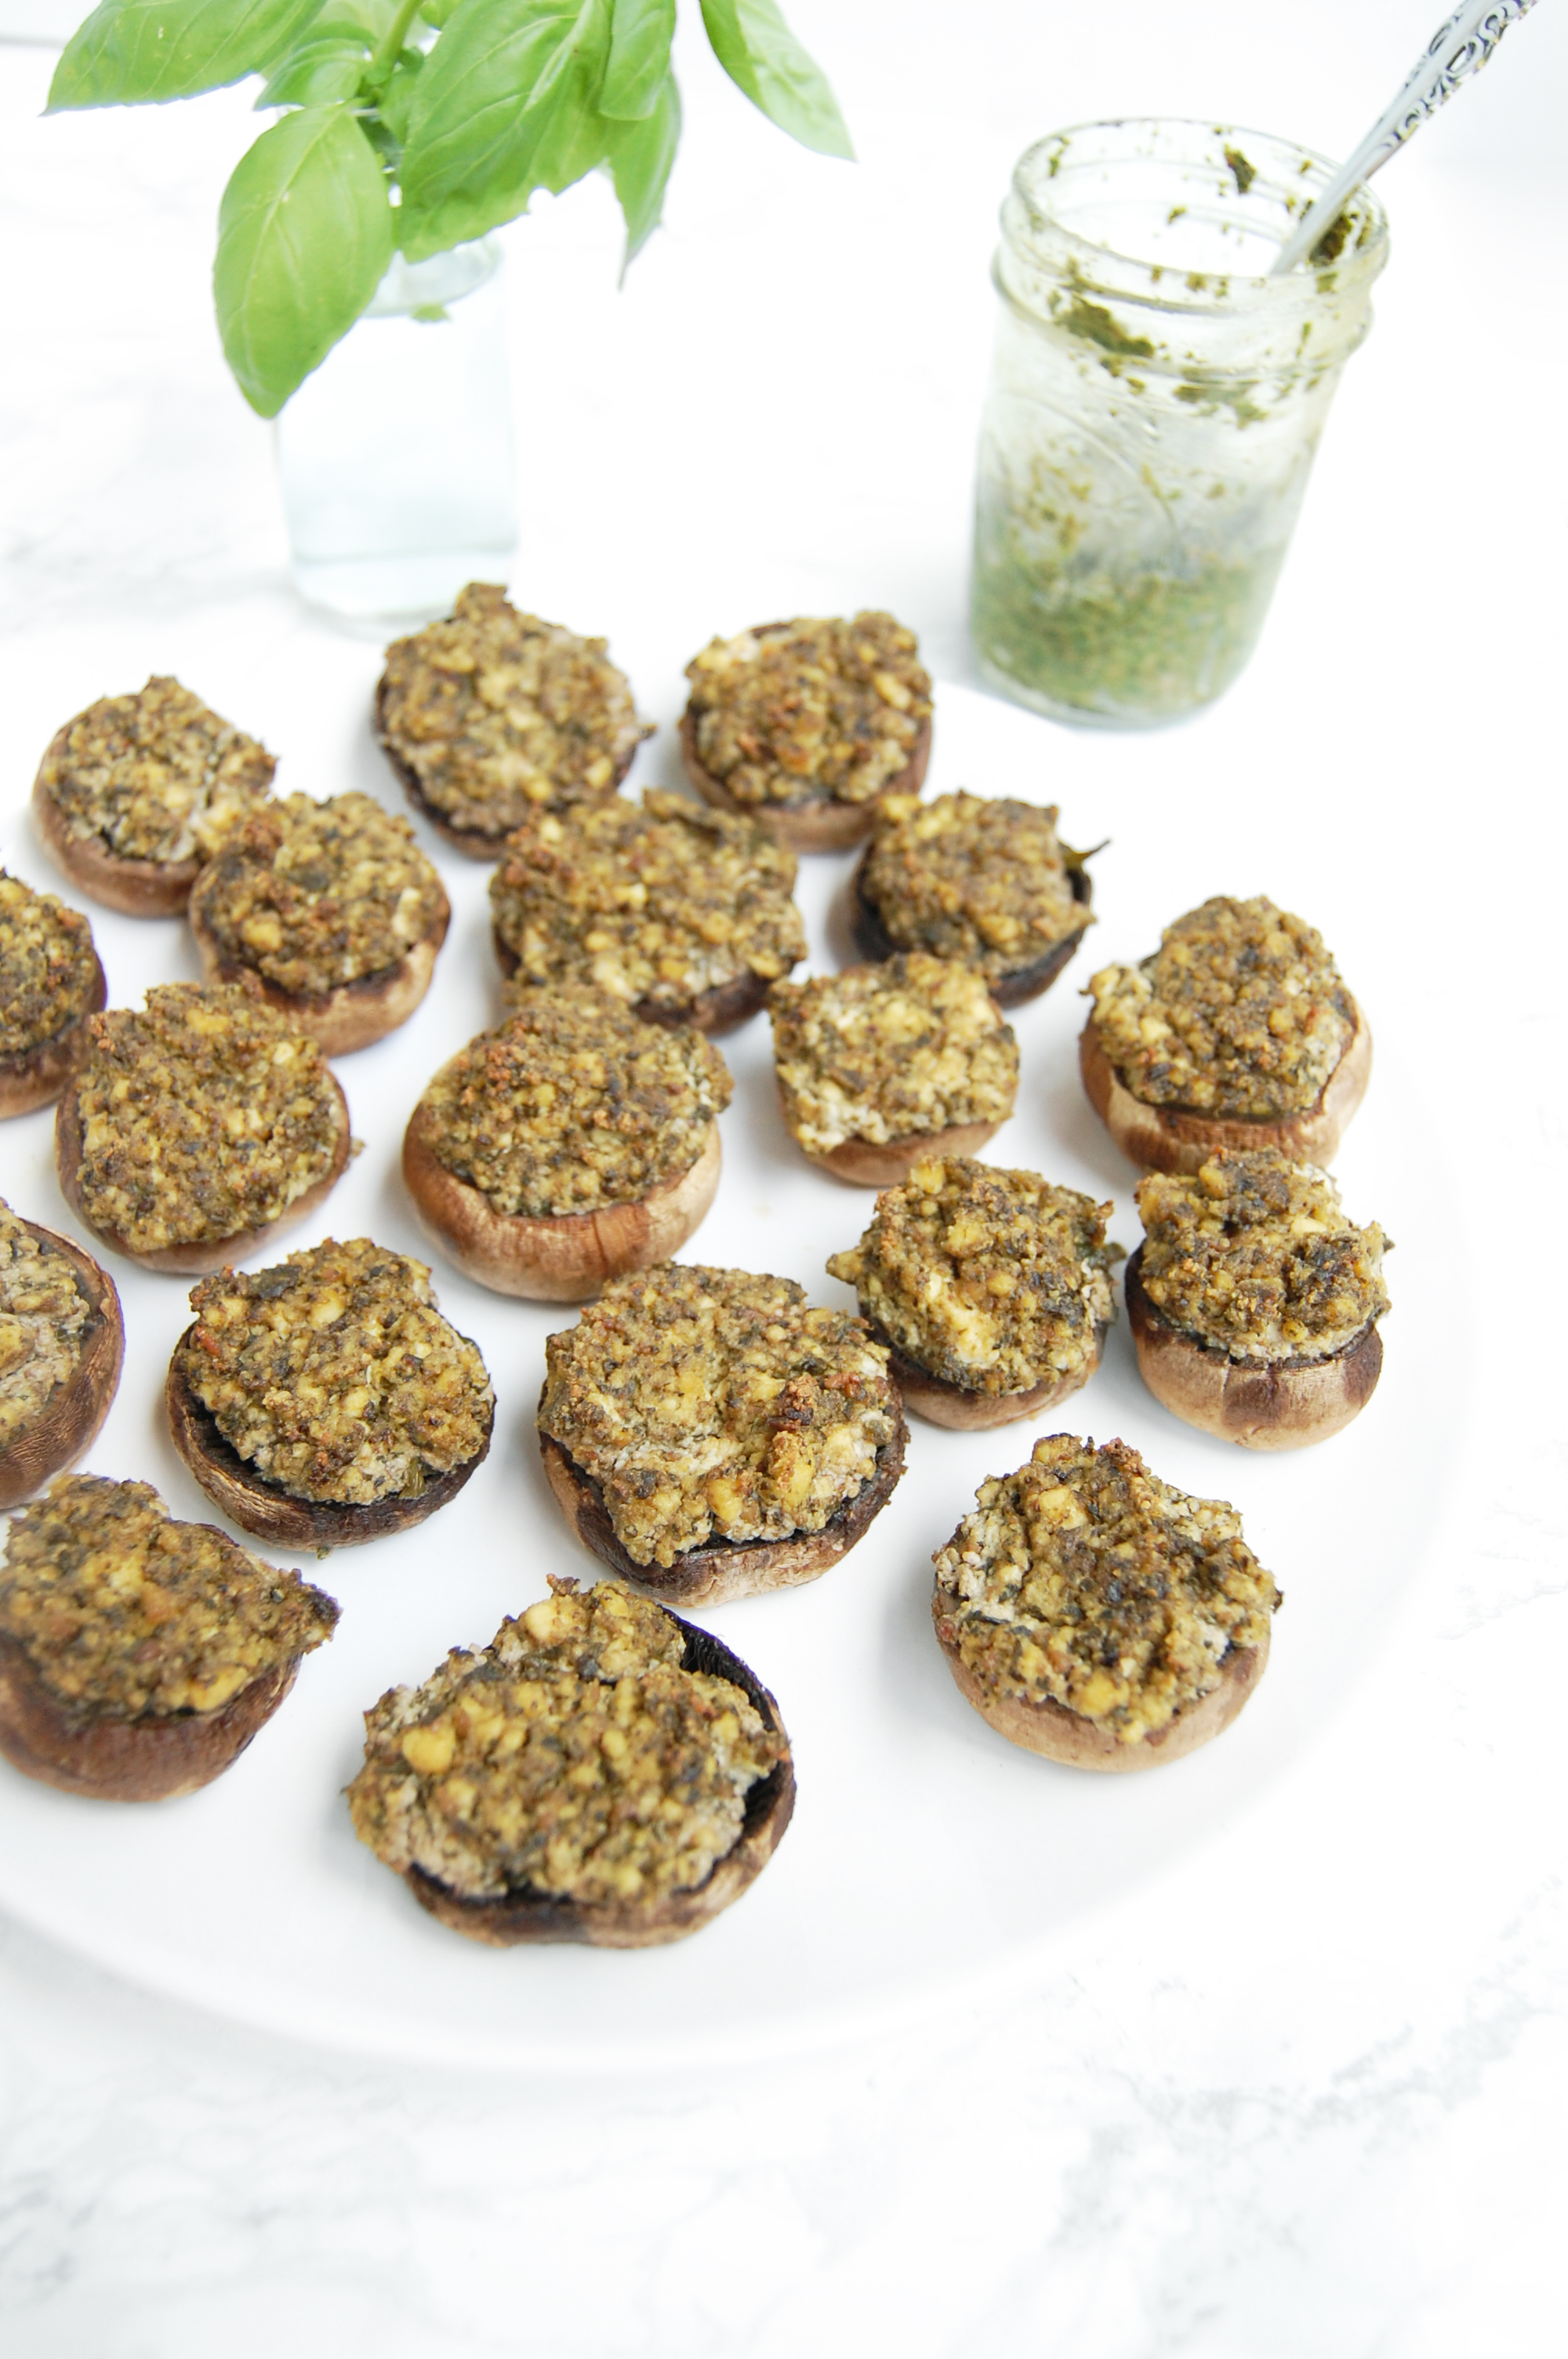 Vegan Ricotto + Pesto Stuffed Mushrooms | AreYouKitchenMe.com